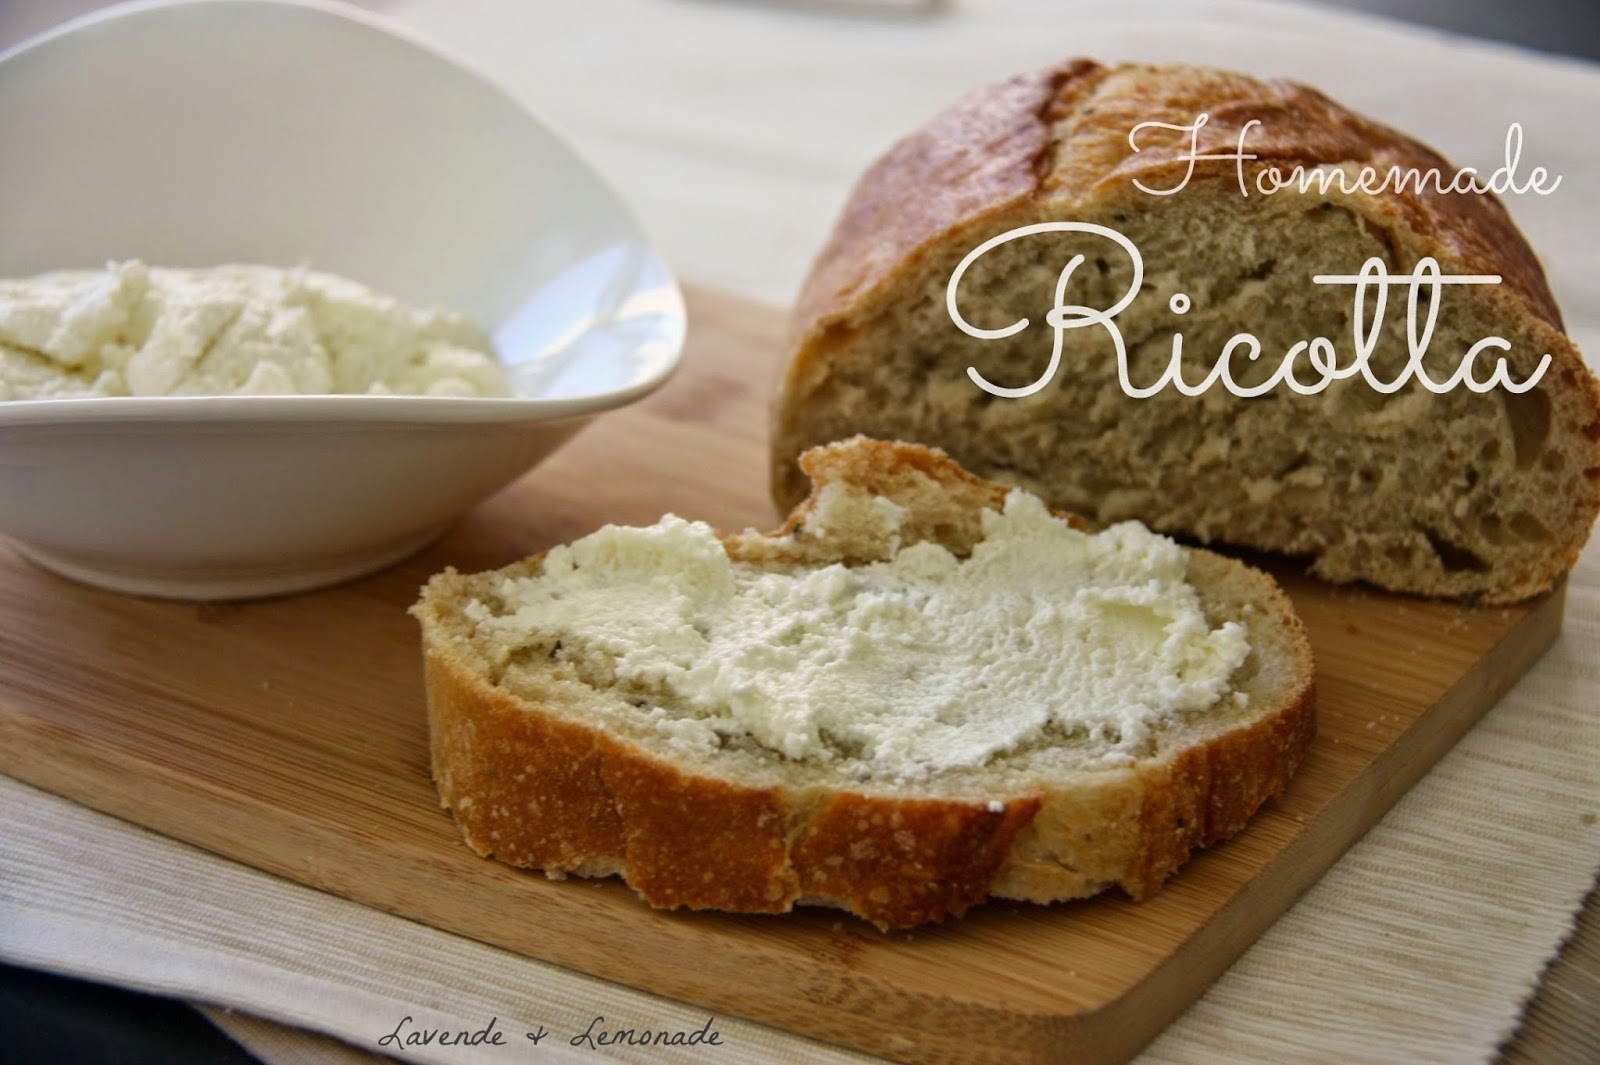 Homemade Ricotta - amazingly delicious and so easy to make with these step-by-step instructions by Lavende & Lemonade